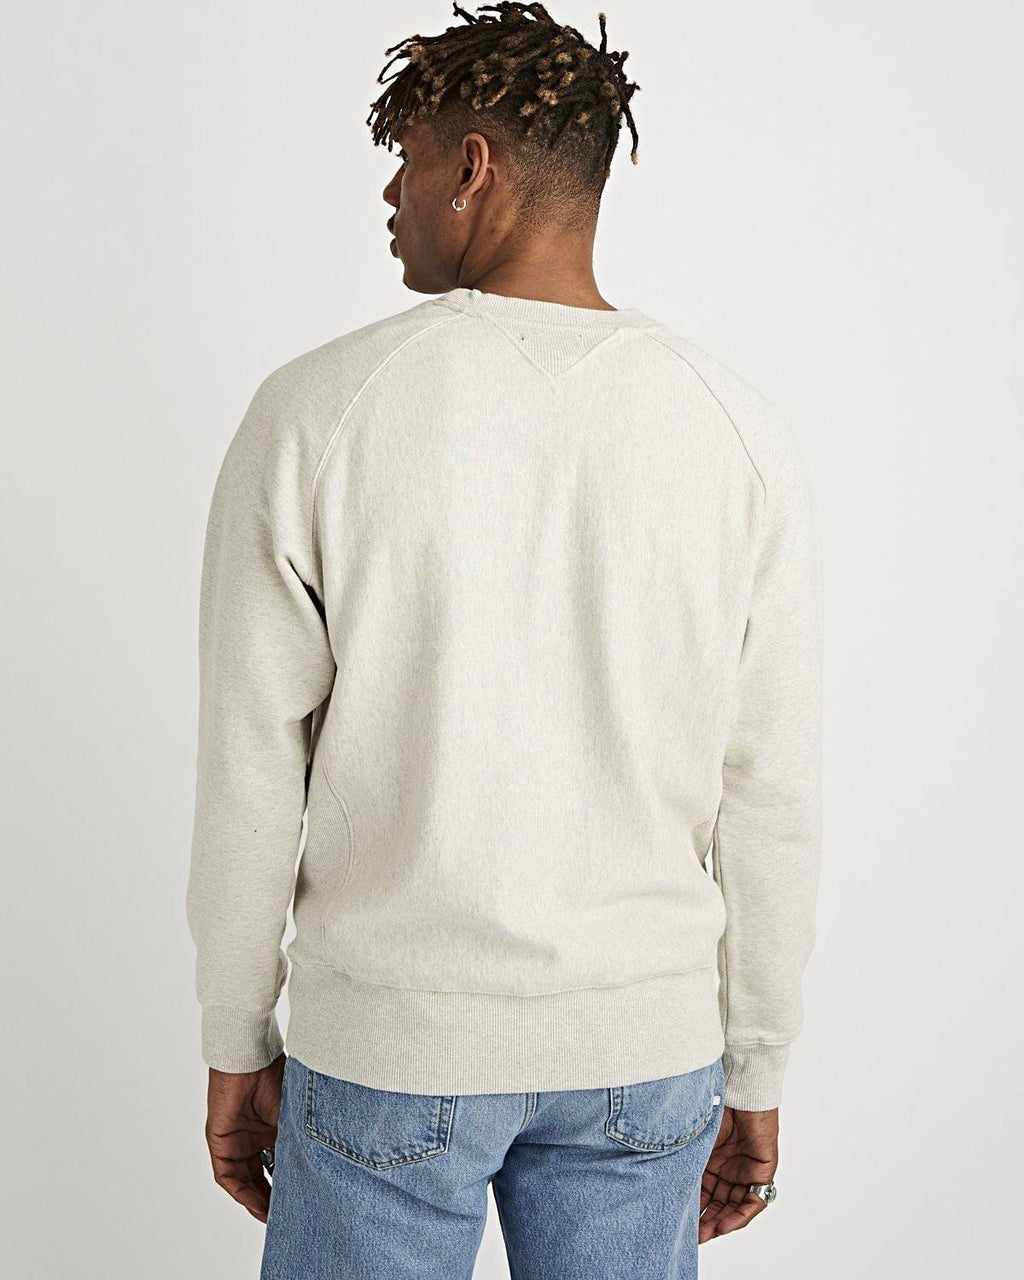 Steve Mohave Sweater